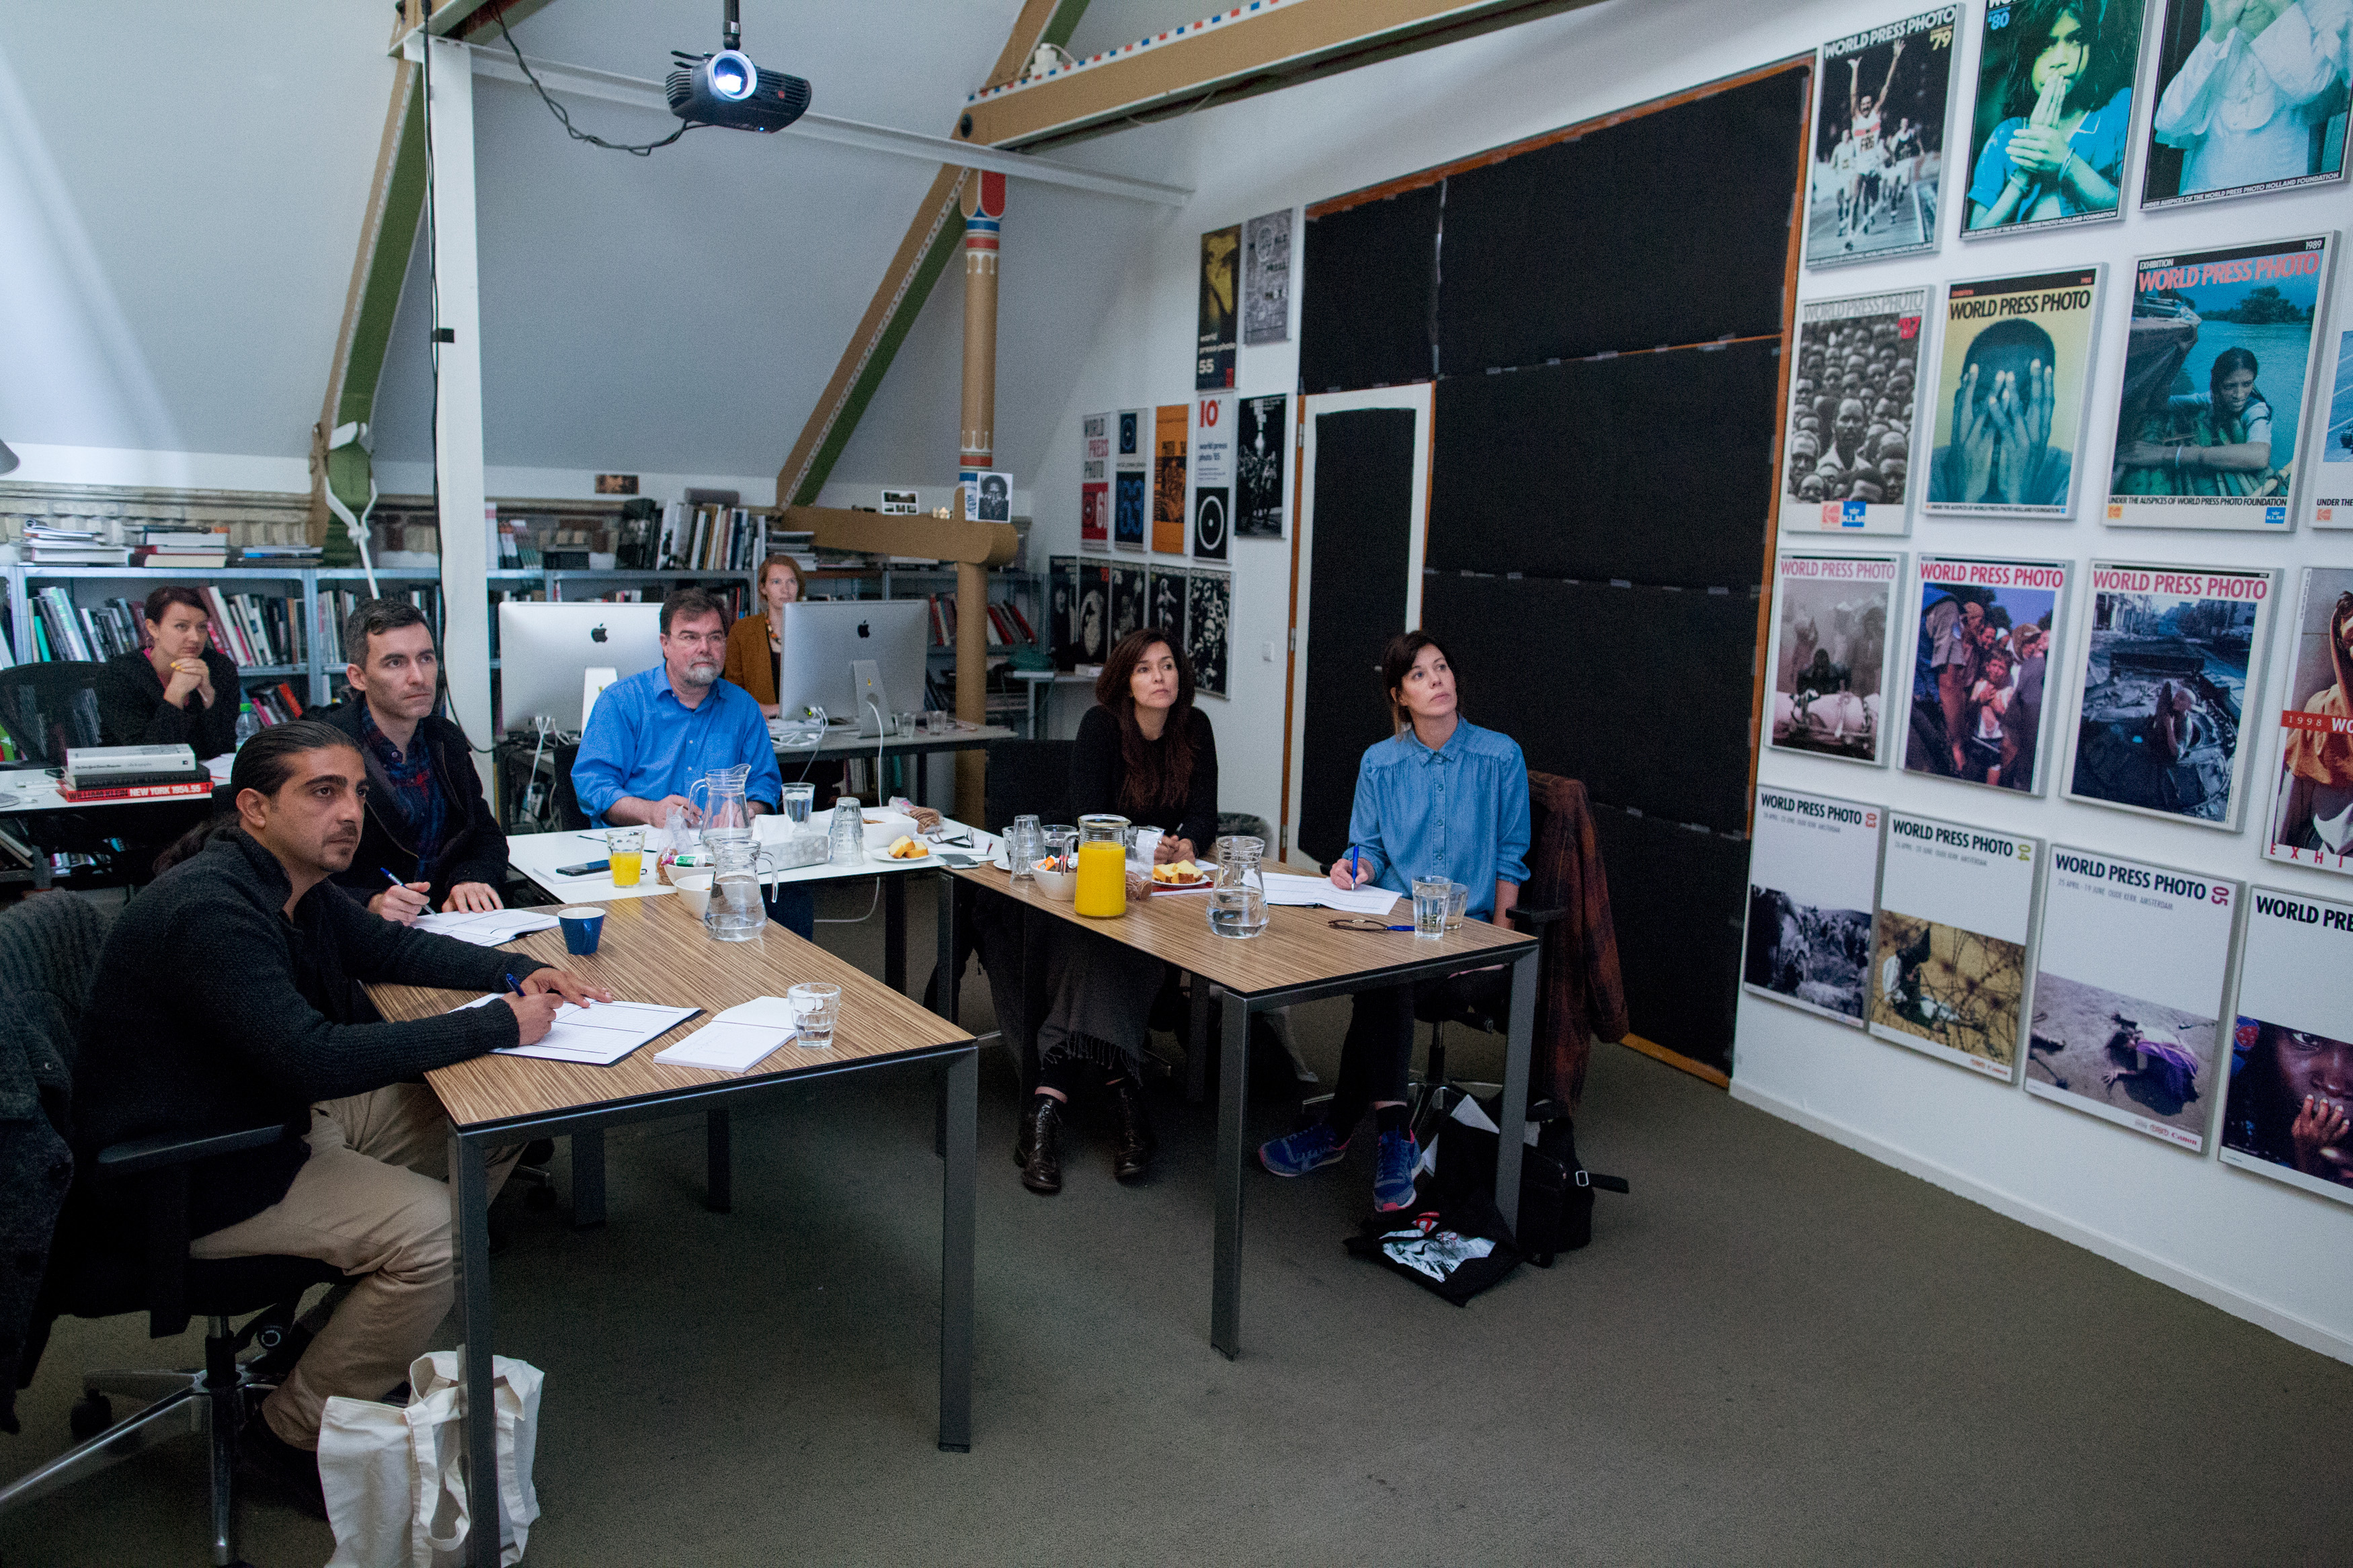 Members of the 2015 Joop Swart Masterclass jury (from left to right: Muhammed Muheisen, Paul Moakley, Jim Casper, Darcy Padilla and Rebecca McClelland) . selects this year's participants.